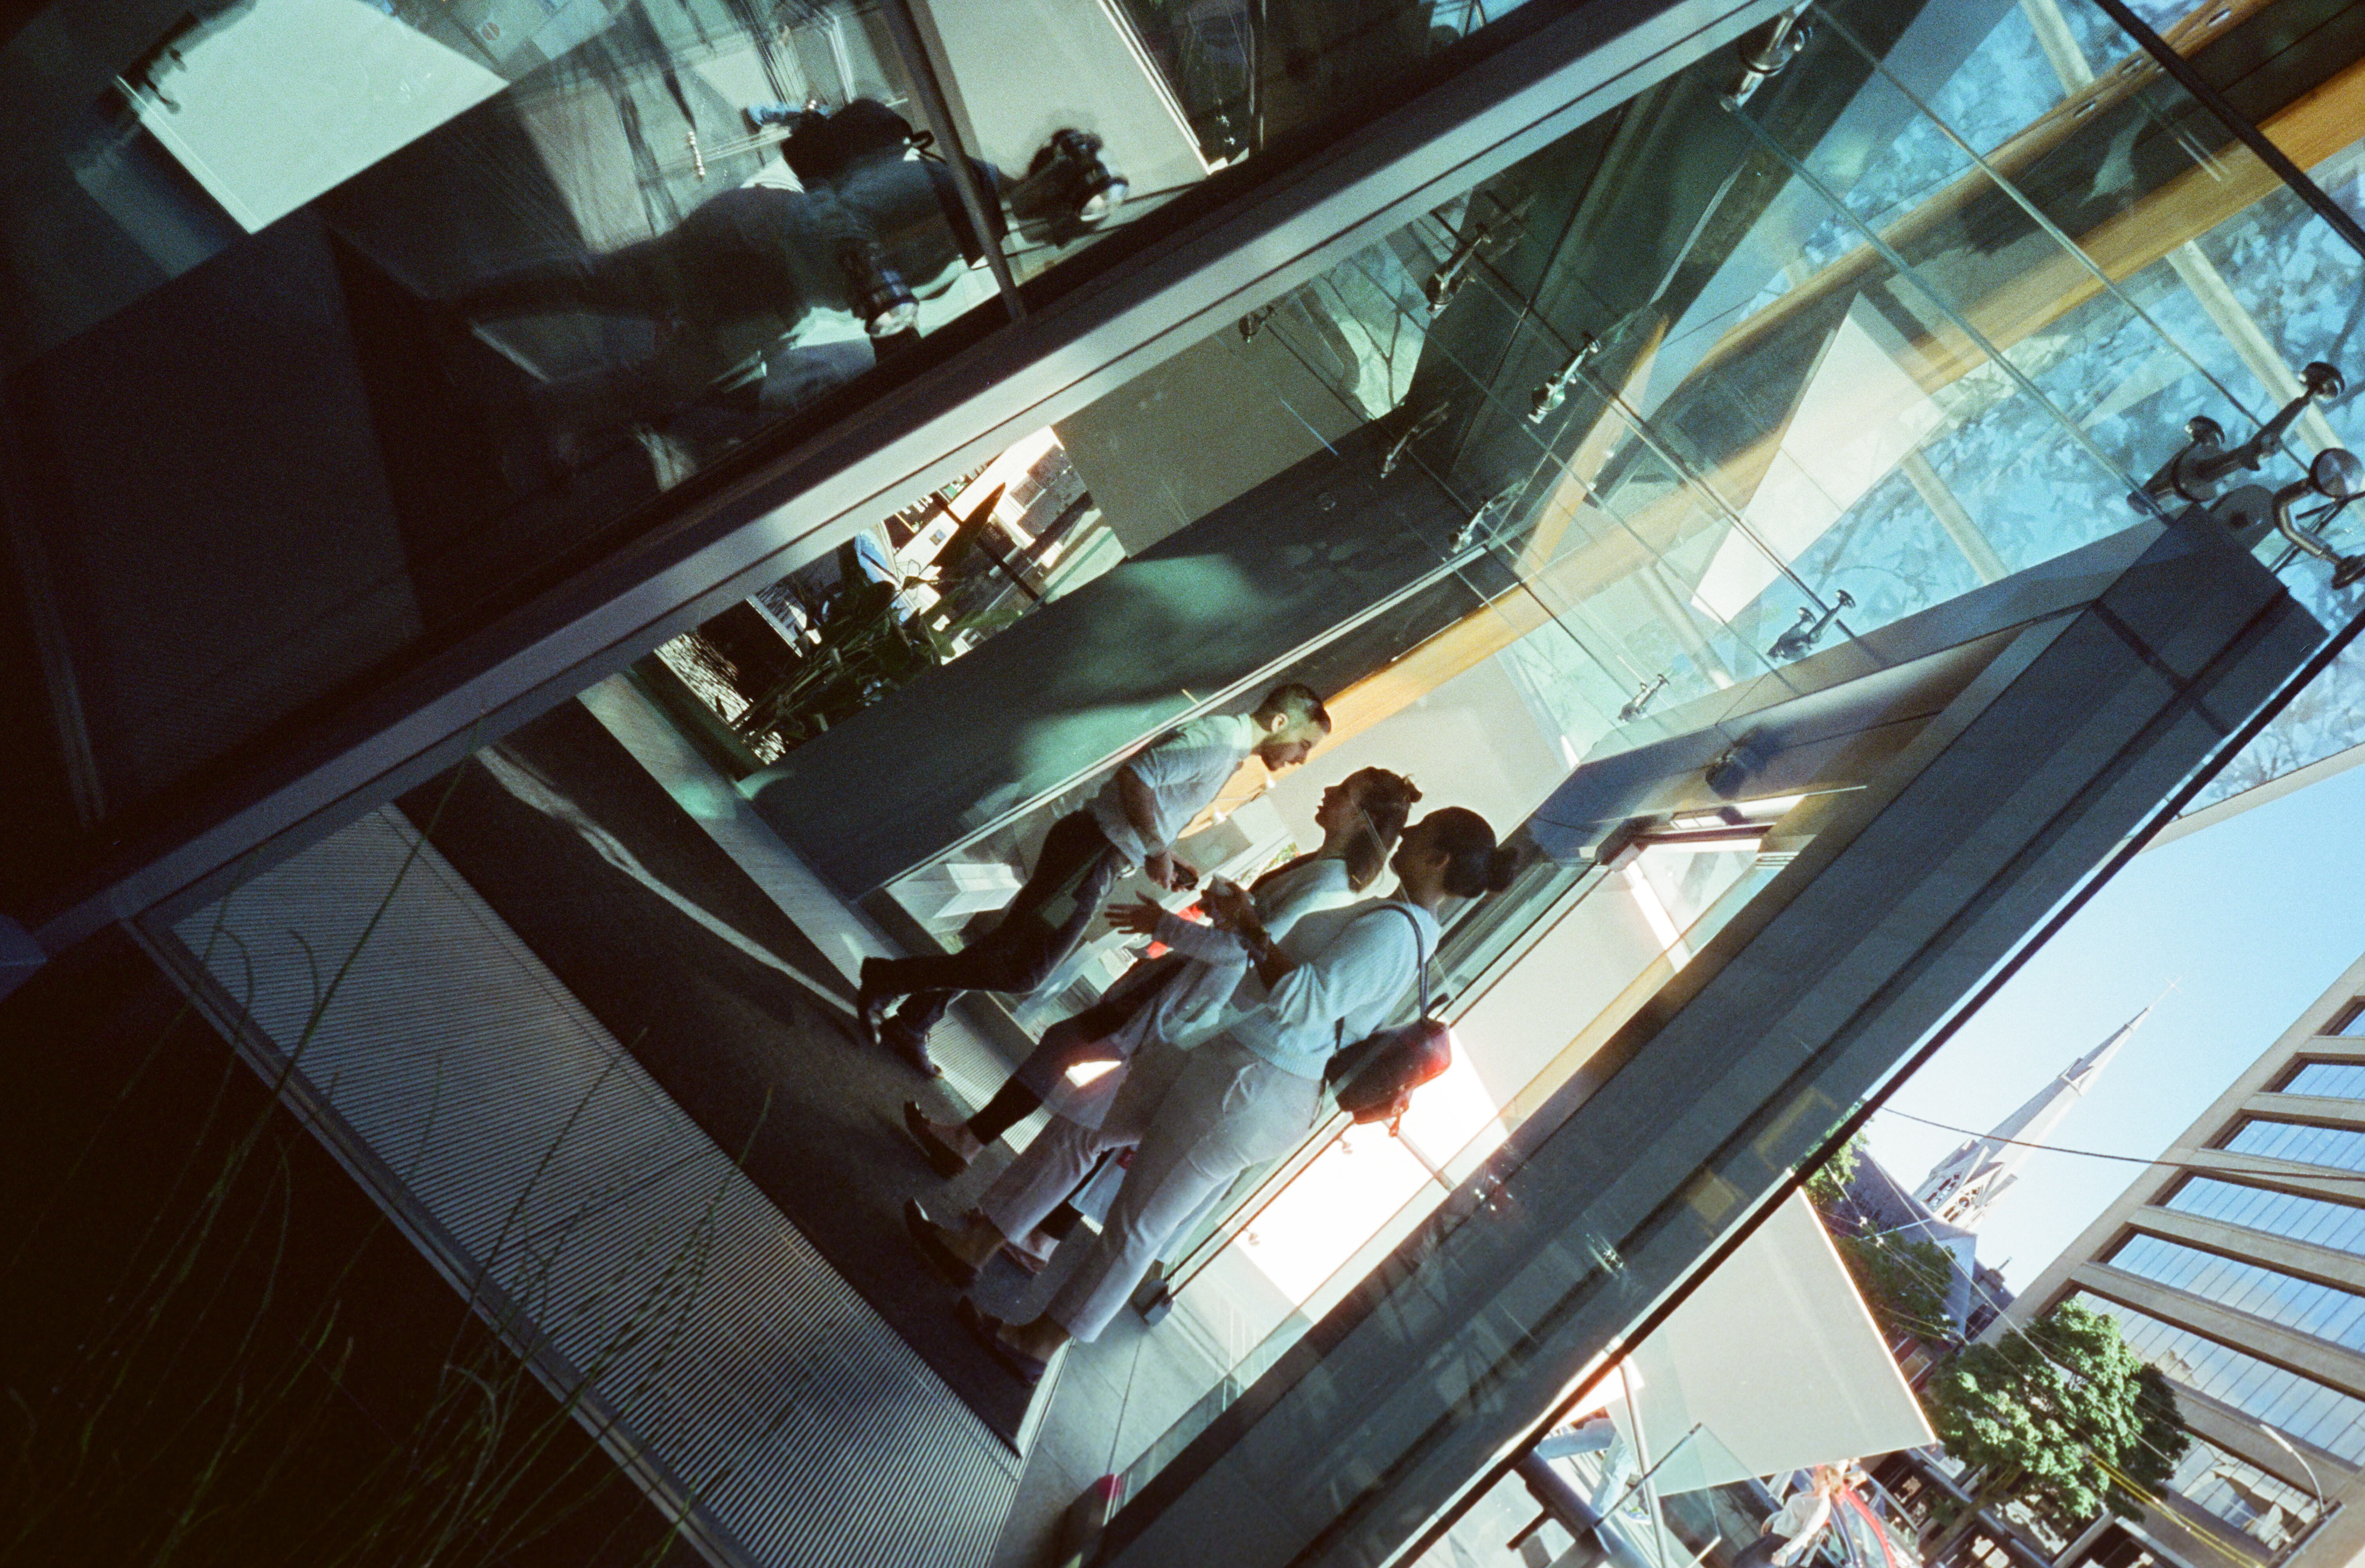 To and fro, Film, Filmisnotdead, Leicam4, People, HQ Photo